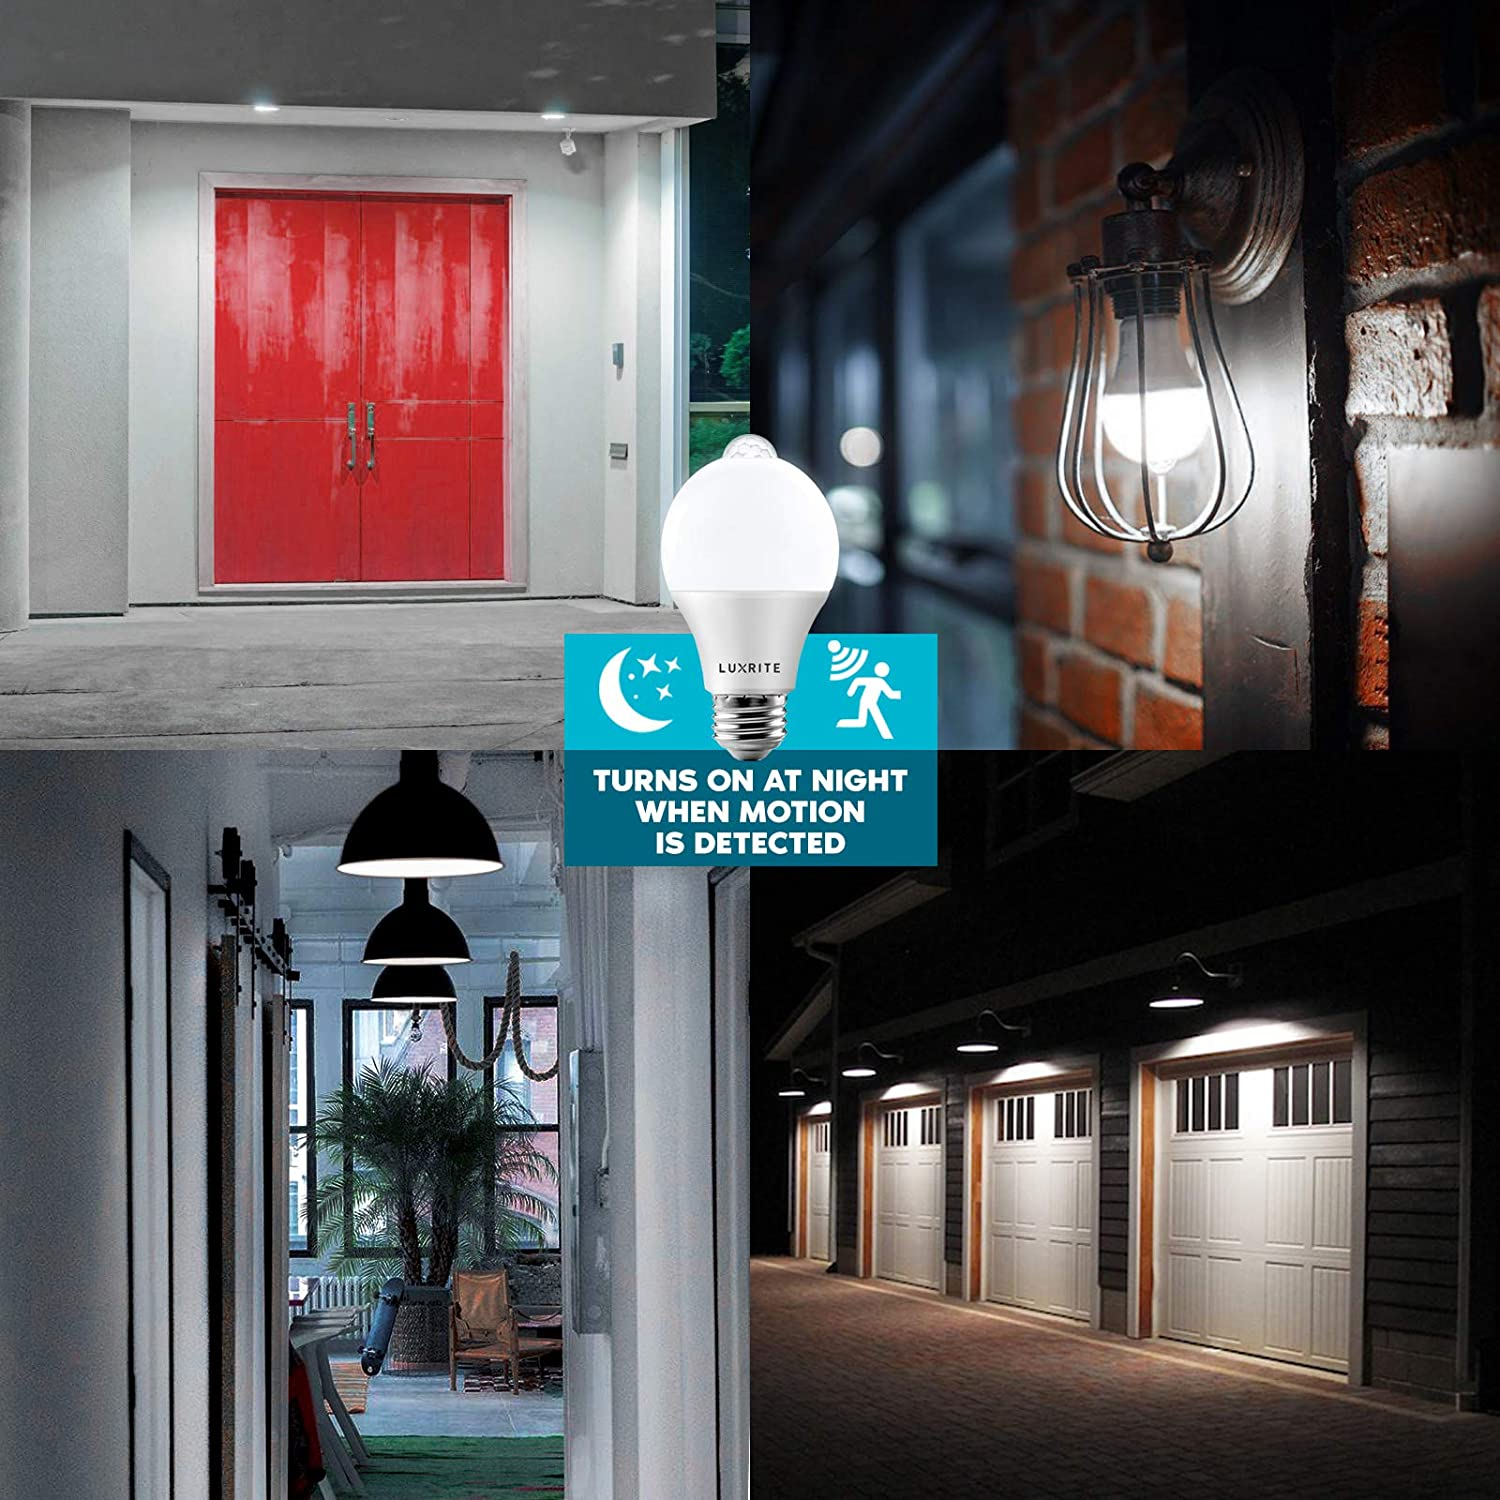 3000K Soft White Indoor//Outdoor E26 Base Security Light Bulb 6 Pack Luxrite A19 LED Motion Sensor Light Bulbs 60W Equivalent 800 Lumens UL Listed Motion Activated Dusk to Dawn Sensor